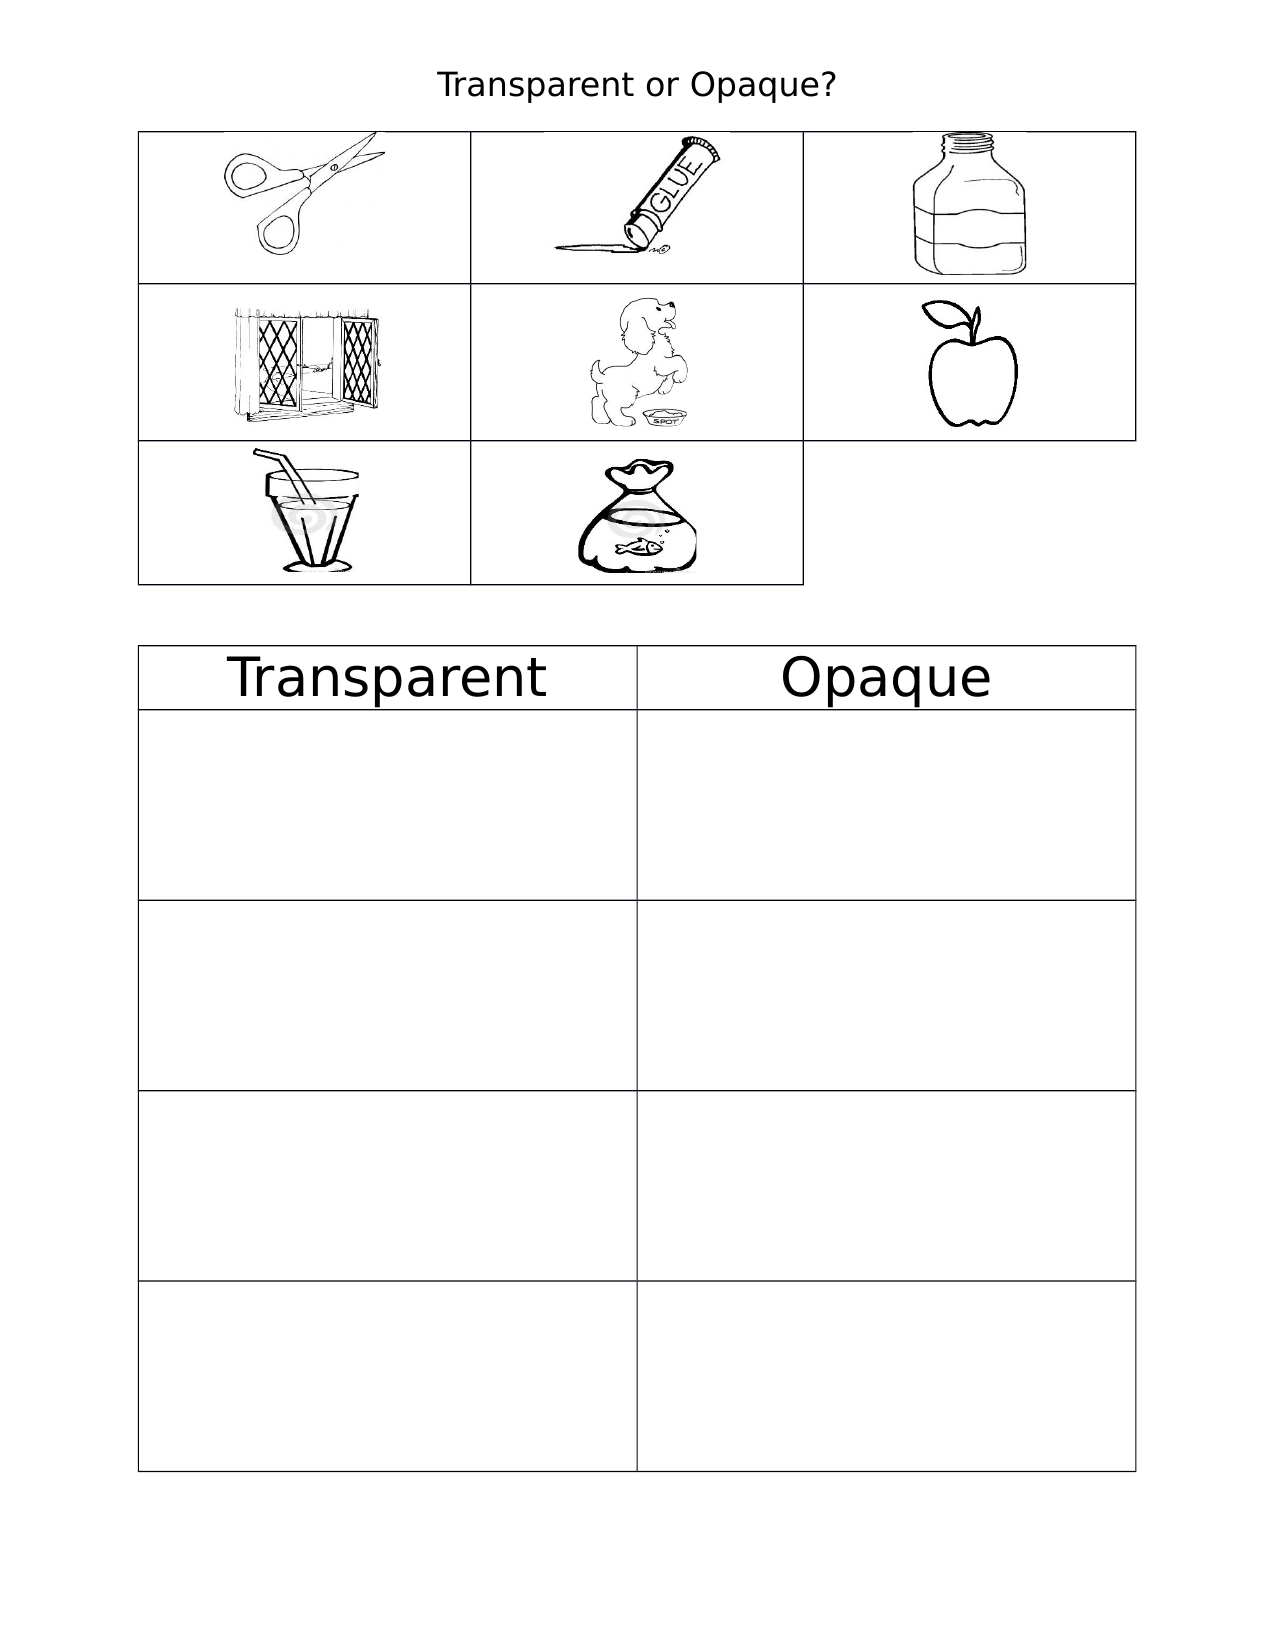 Transparent And Opaque Resource Preview